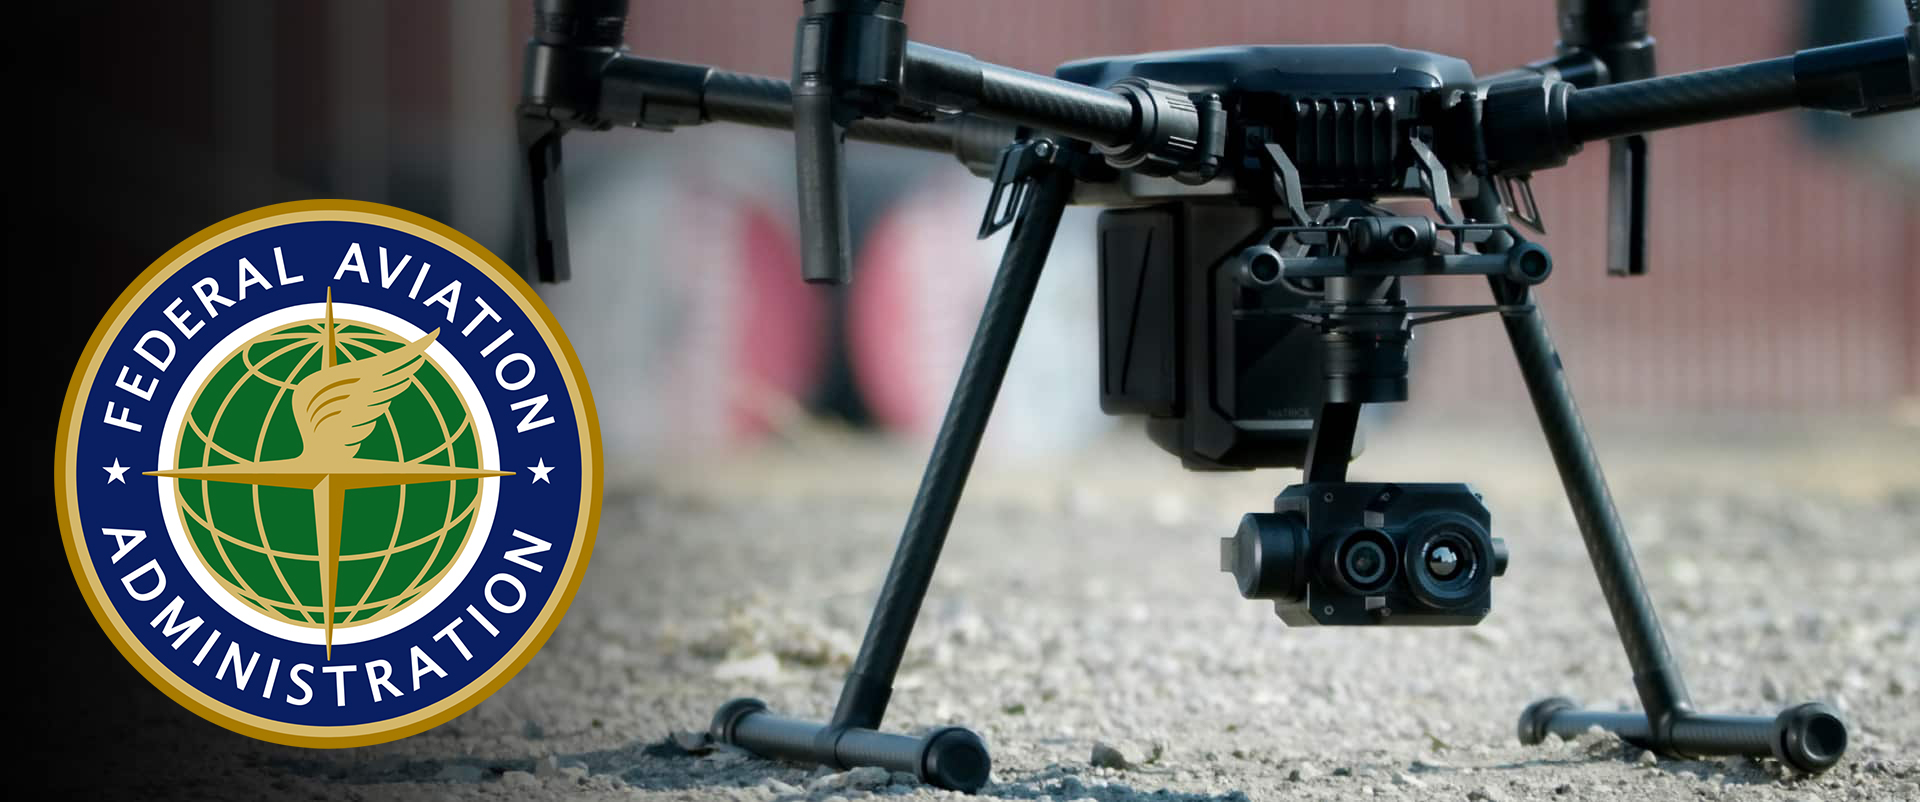 Drone Aerial Photography Regulations